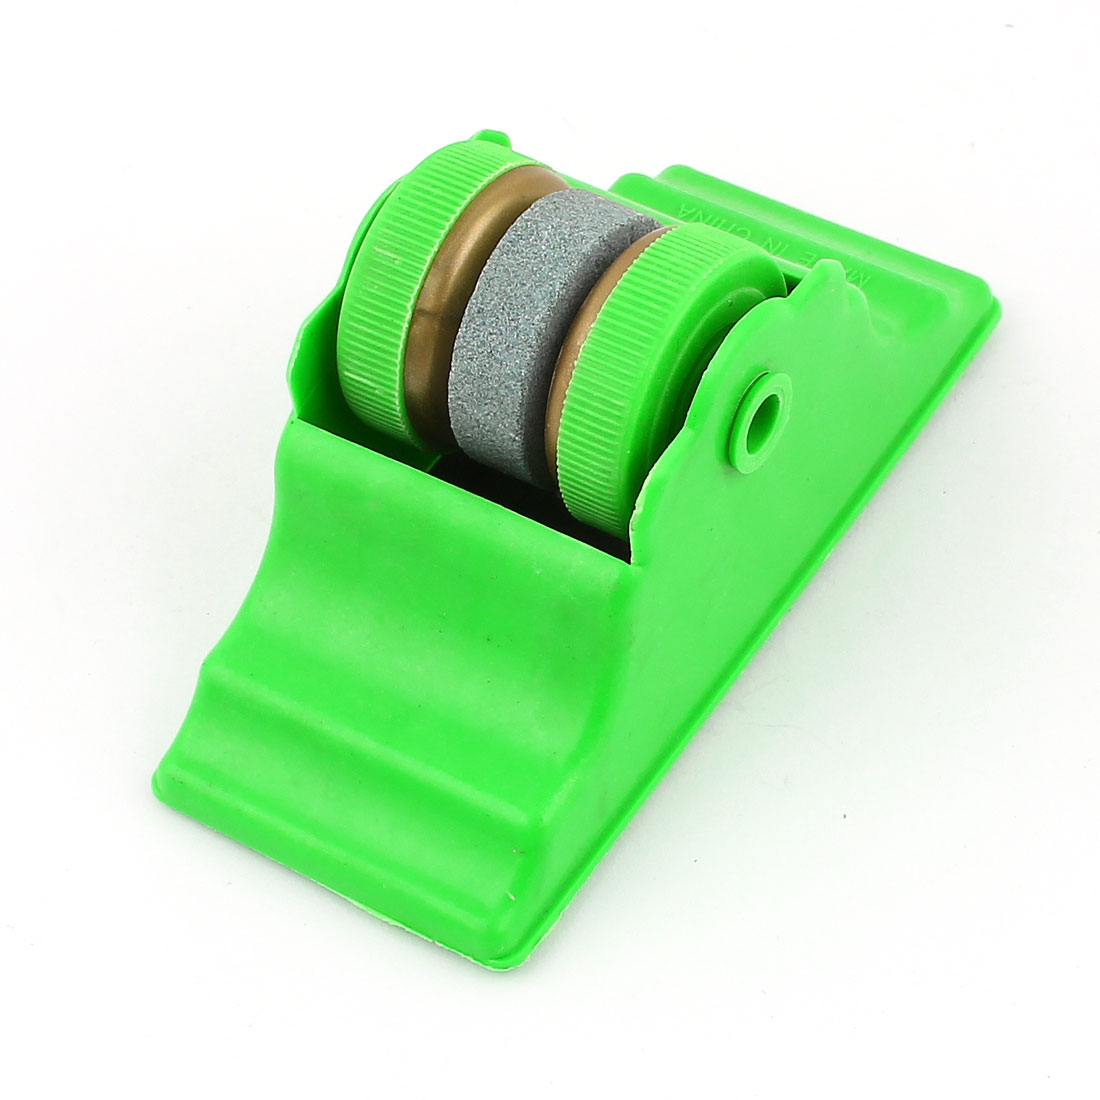 Green Plastic Shell Round Grit Lapped Sharpening Whetstone Home Tool